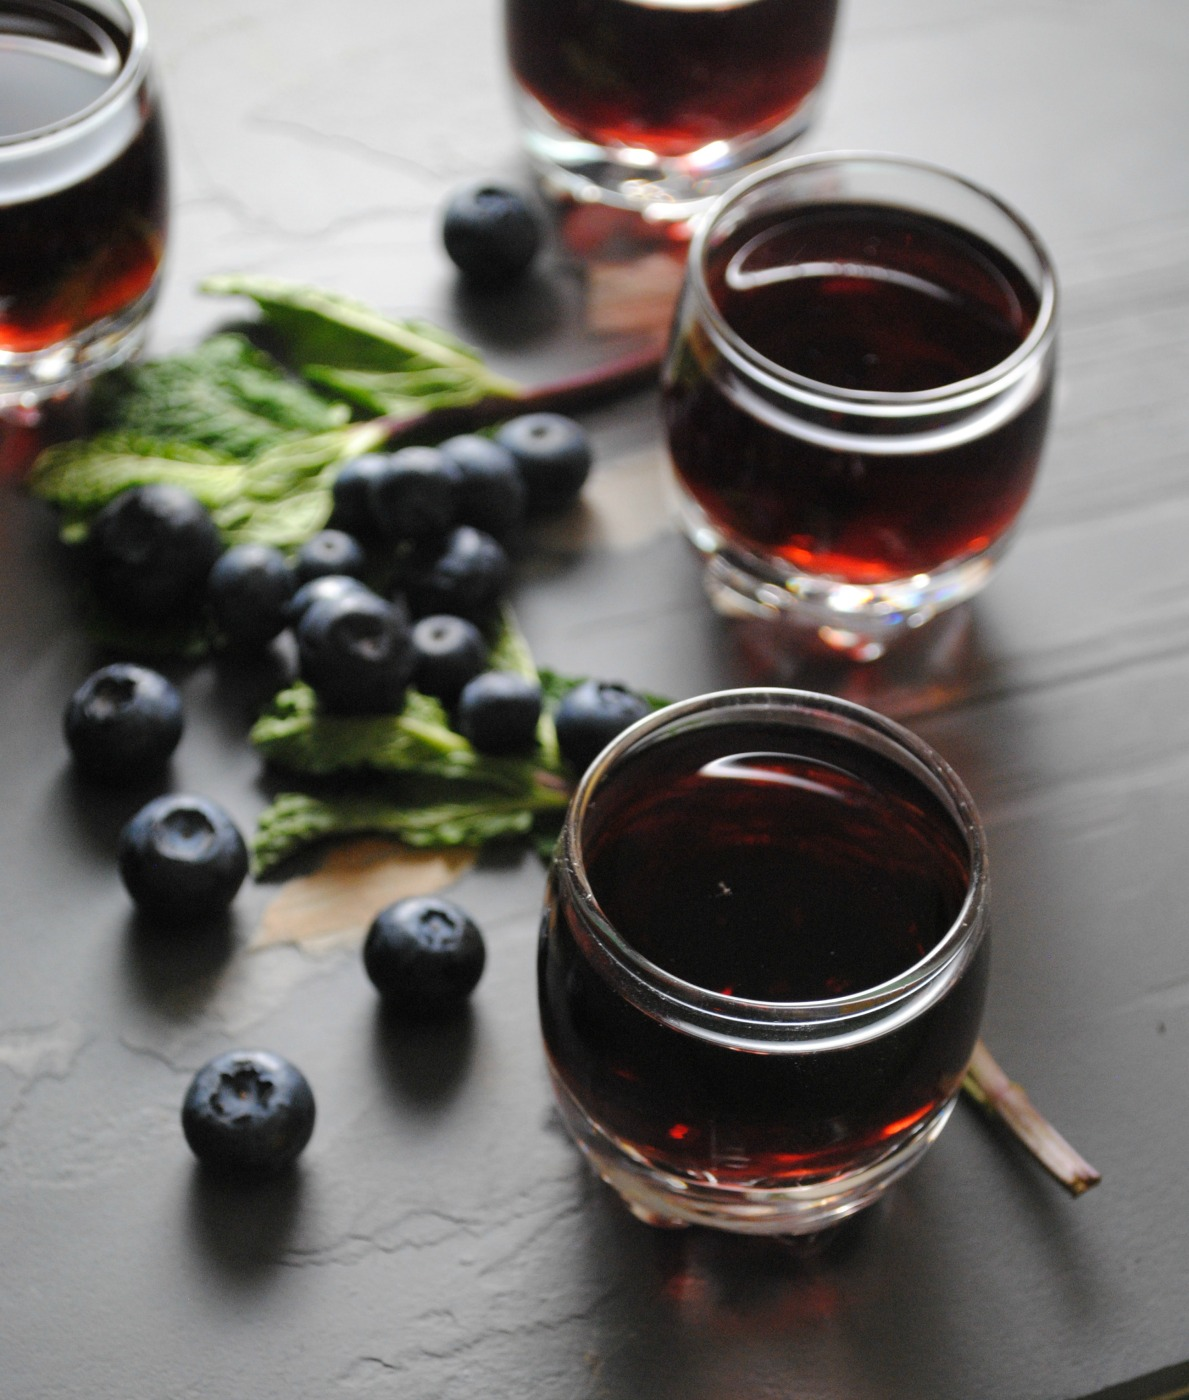 blueberry-mint-infused-tequila-donjulio-VianneyRodriguez